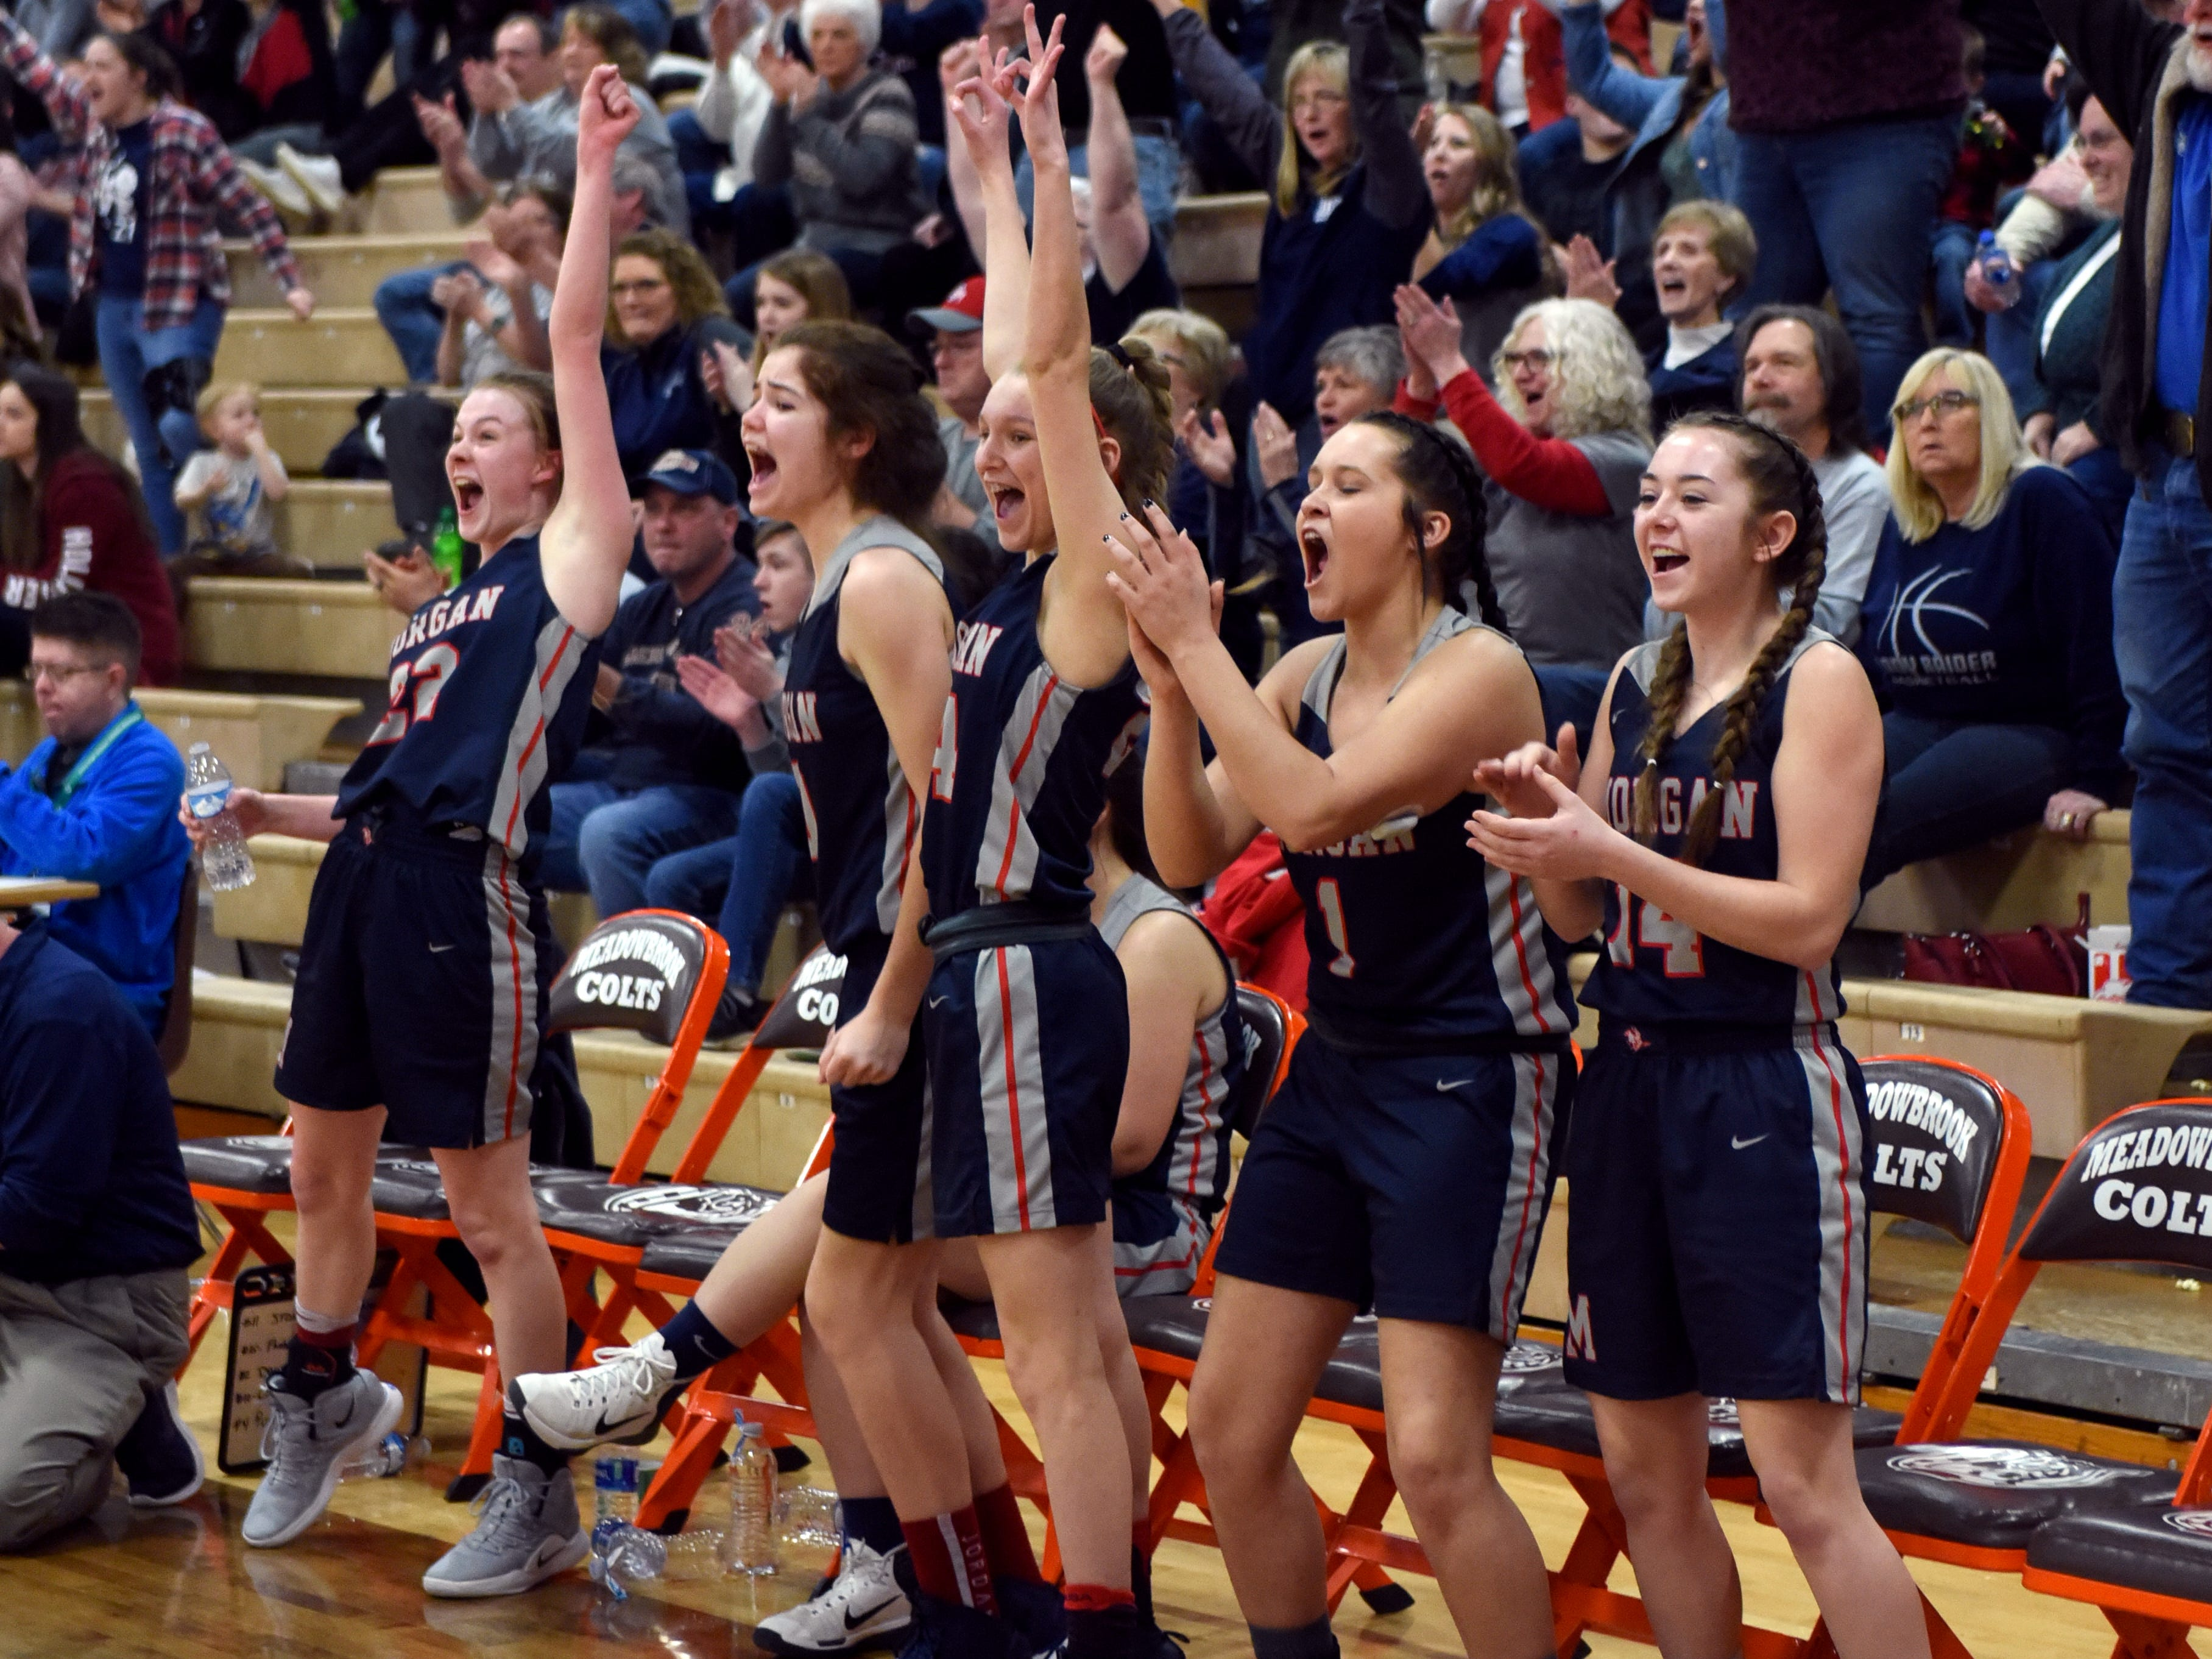 The bench celebrates a Kaylie Apperson 3-pointer during the third quarter of Morgan's 46-44 win against Bellaire on Saturday in a Division III district final at Meadowbrook High School.